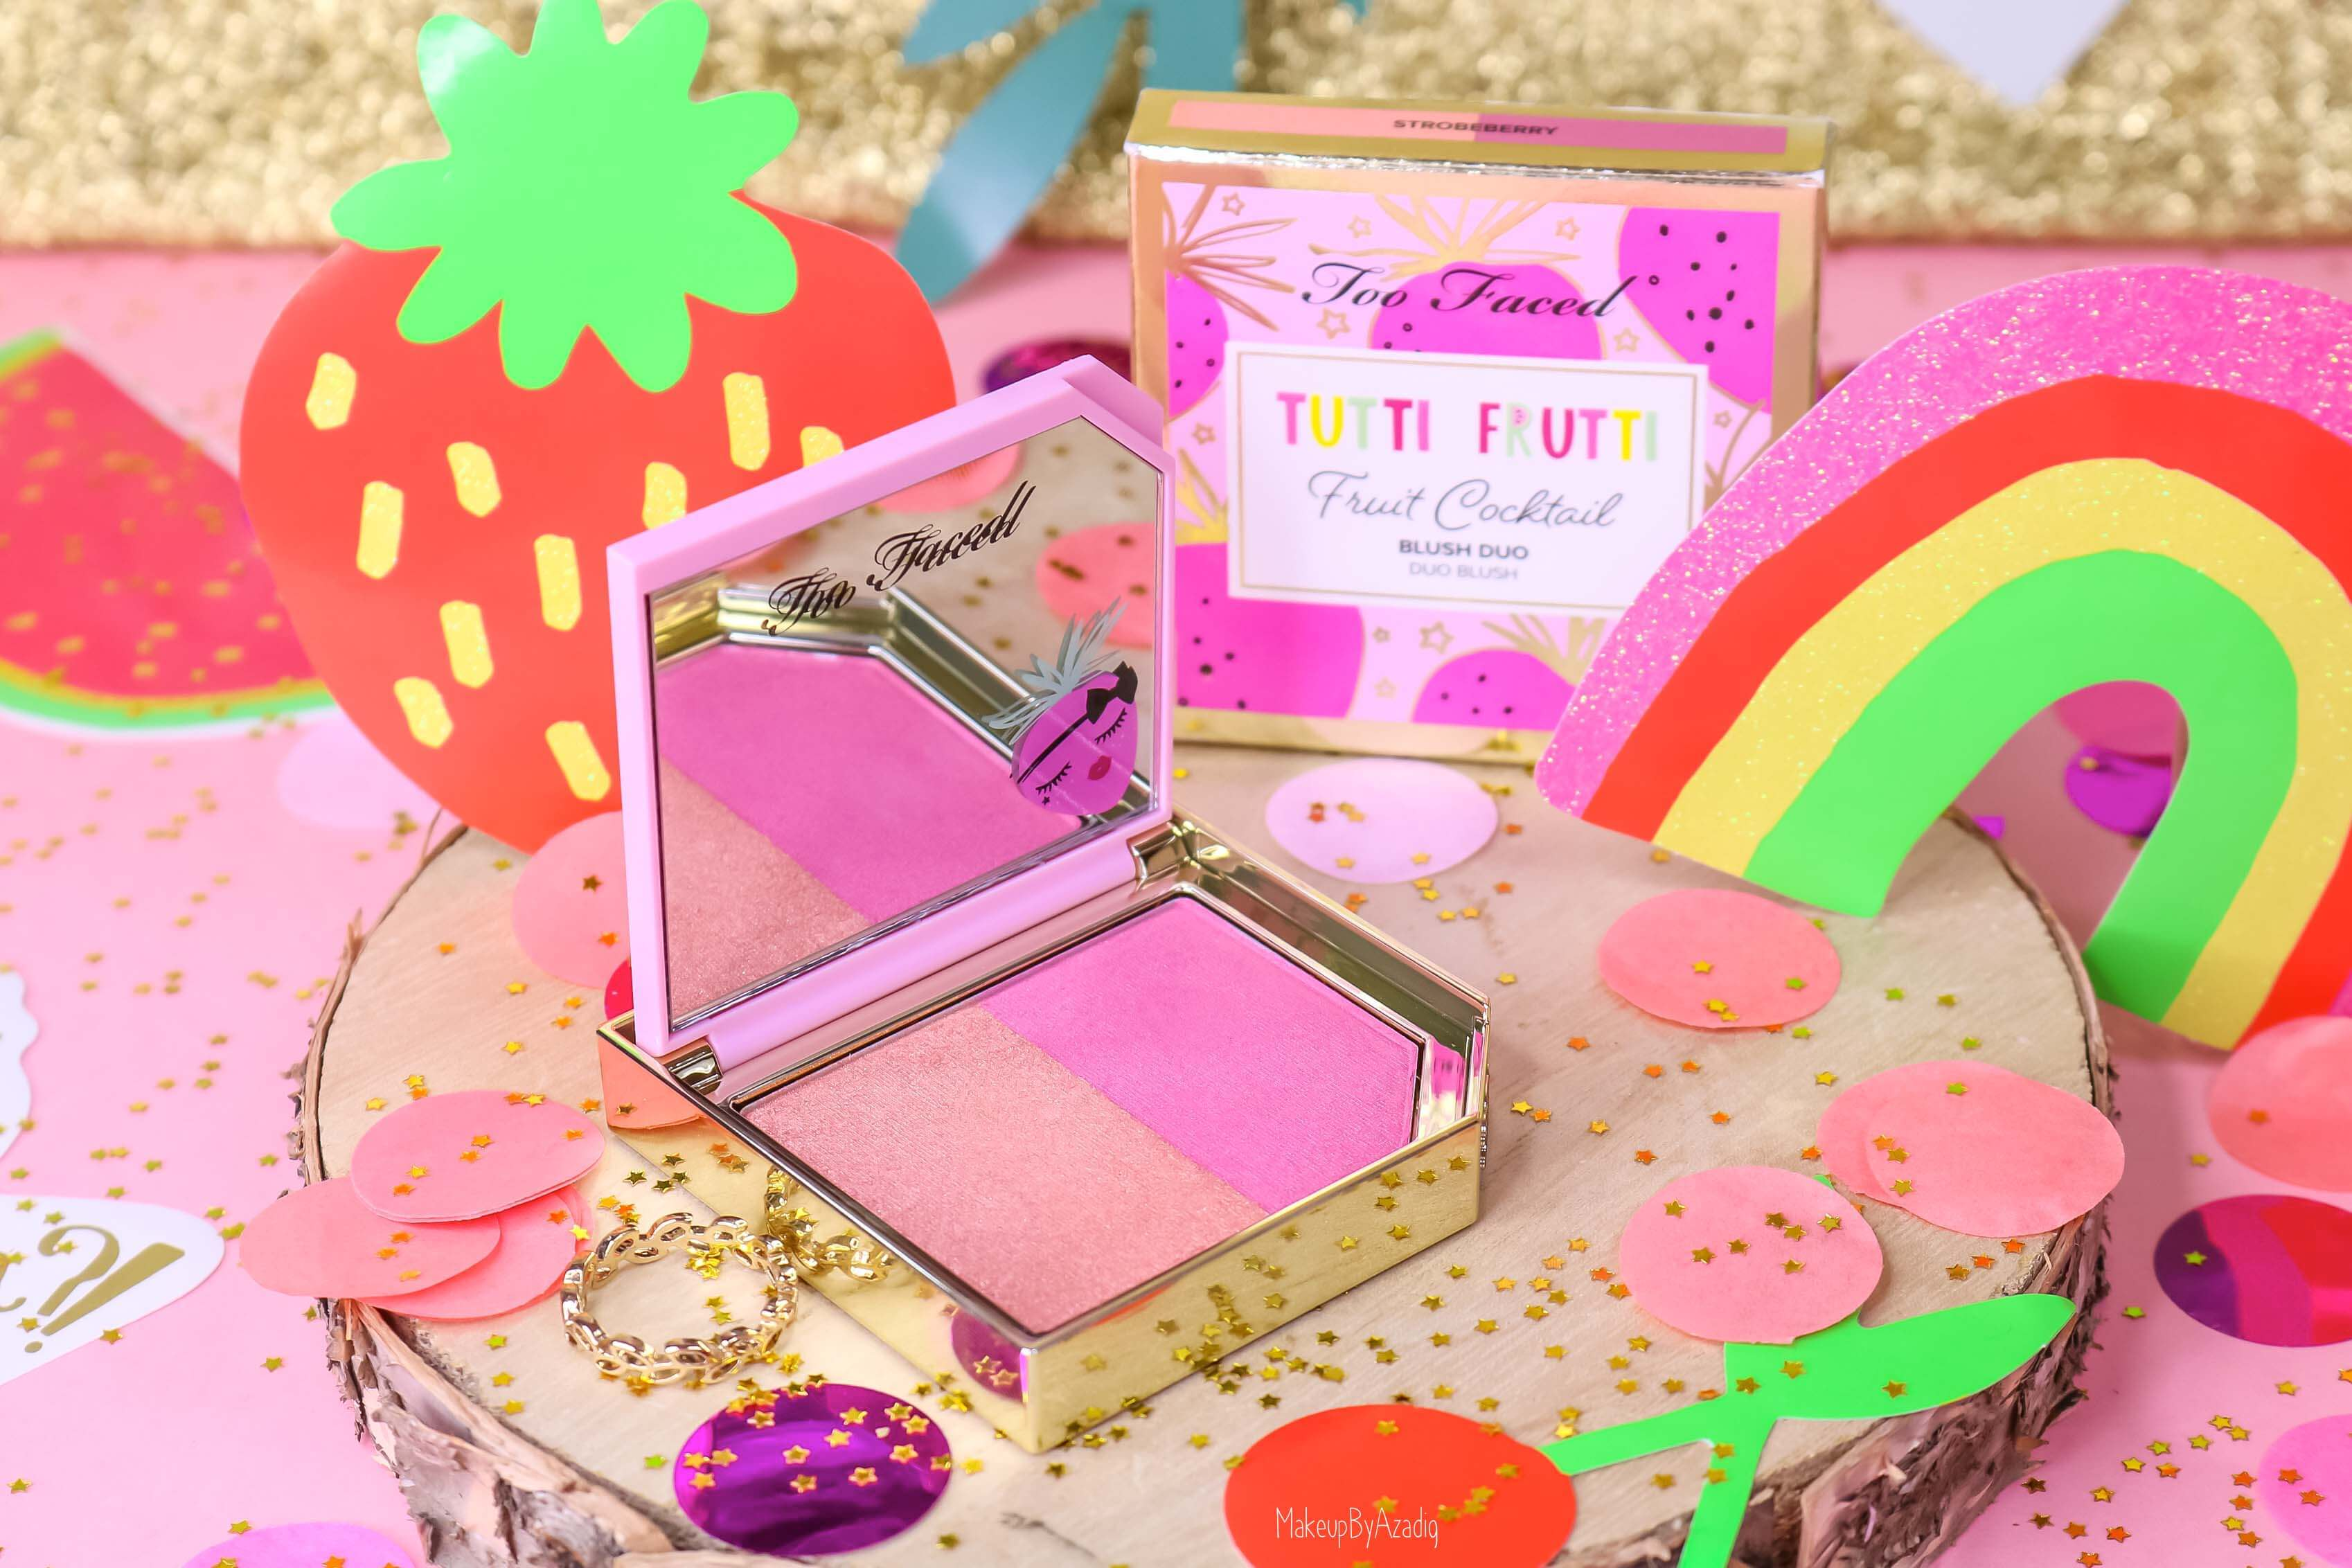 Le duo de blush « Fruit Cocktail » Tutti Frutti de TOO FACED